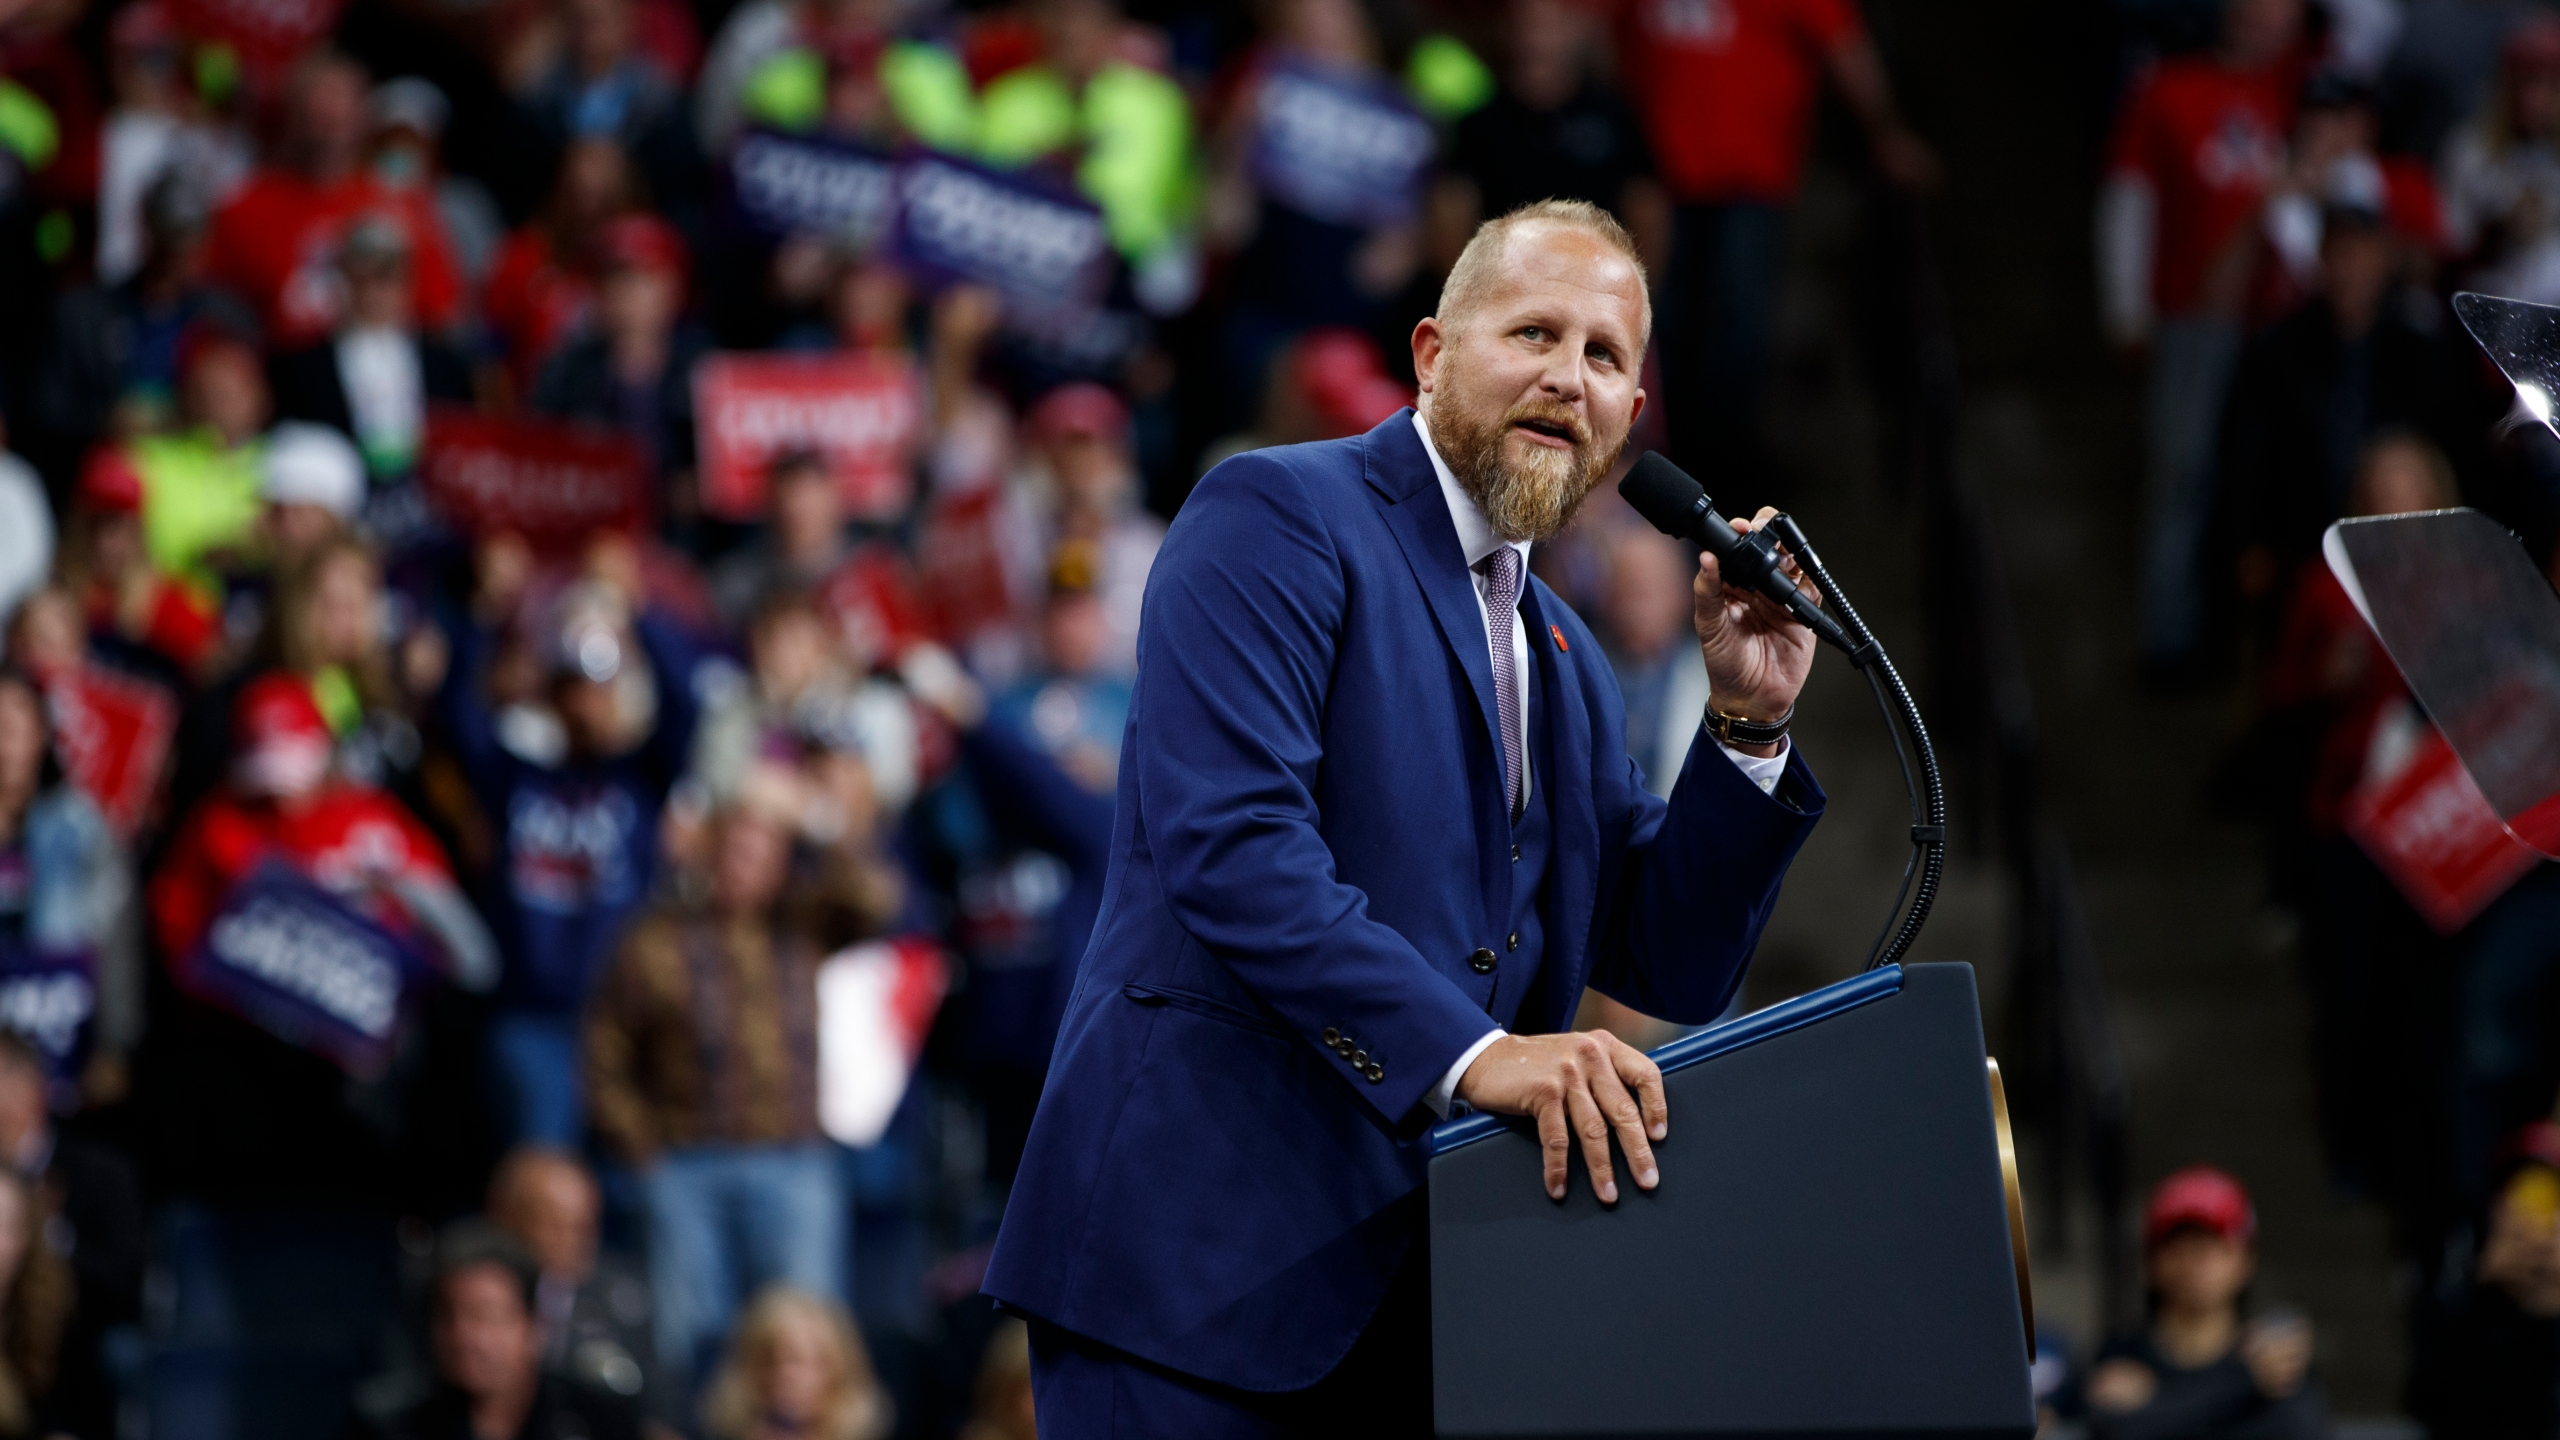 In this Oct. 10, 2019, file photo, Brad Parscale, then-campaign manager for President Donald Trump, speaks during a campaign rally at the Target Center in Minneapolis. Parscale was hospitalized Sunday, Sept. 27, 2020, after he threatened to harm himself, according to Florida police and campaign officials. (AP Photo/Evan Vucci, File)